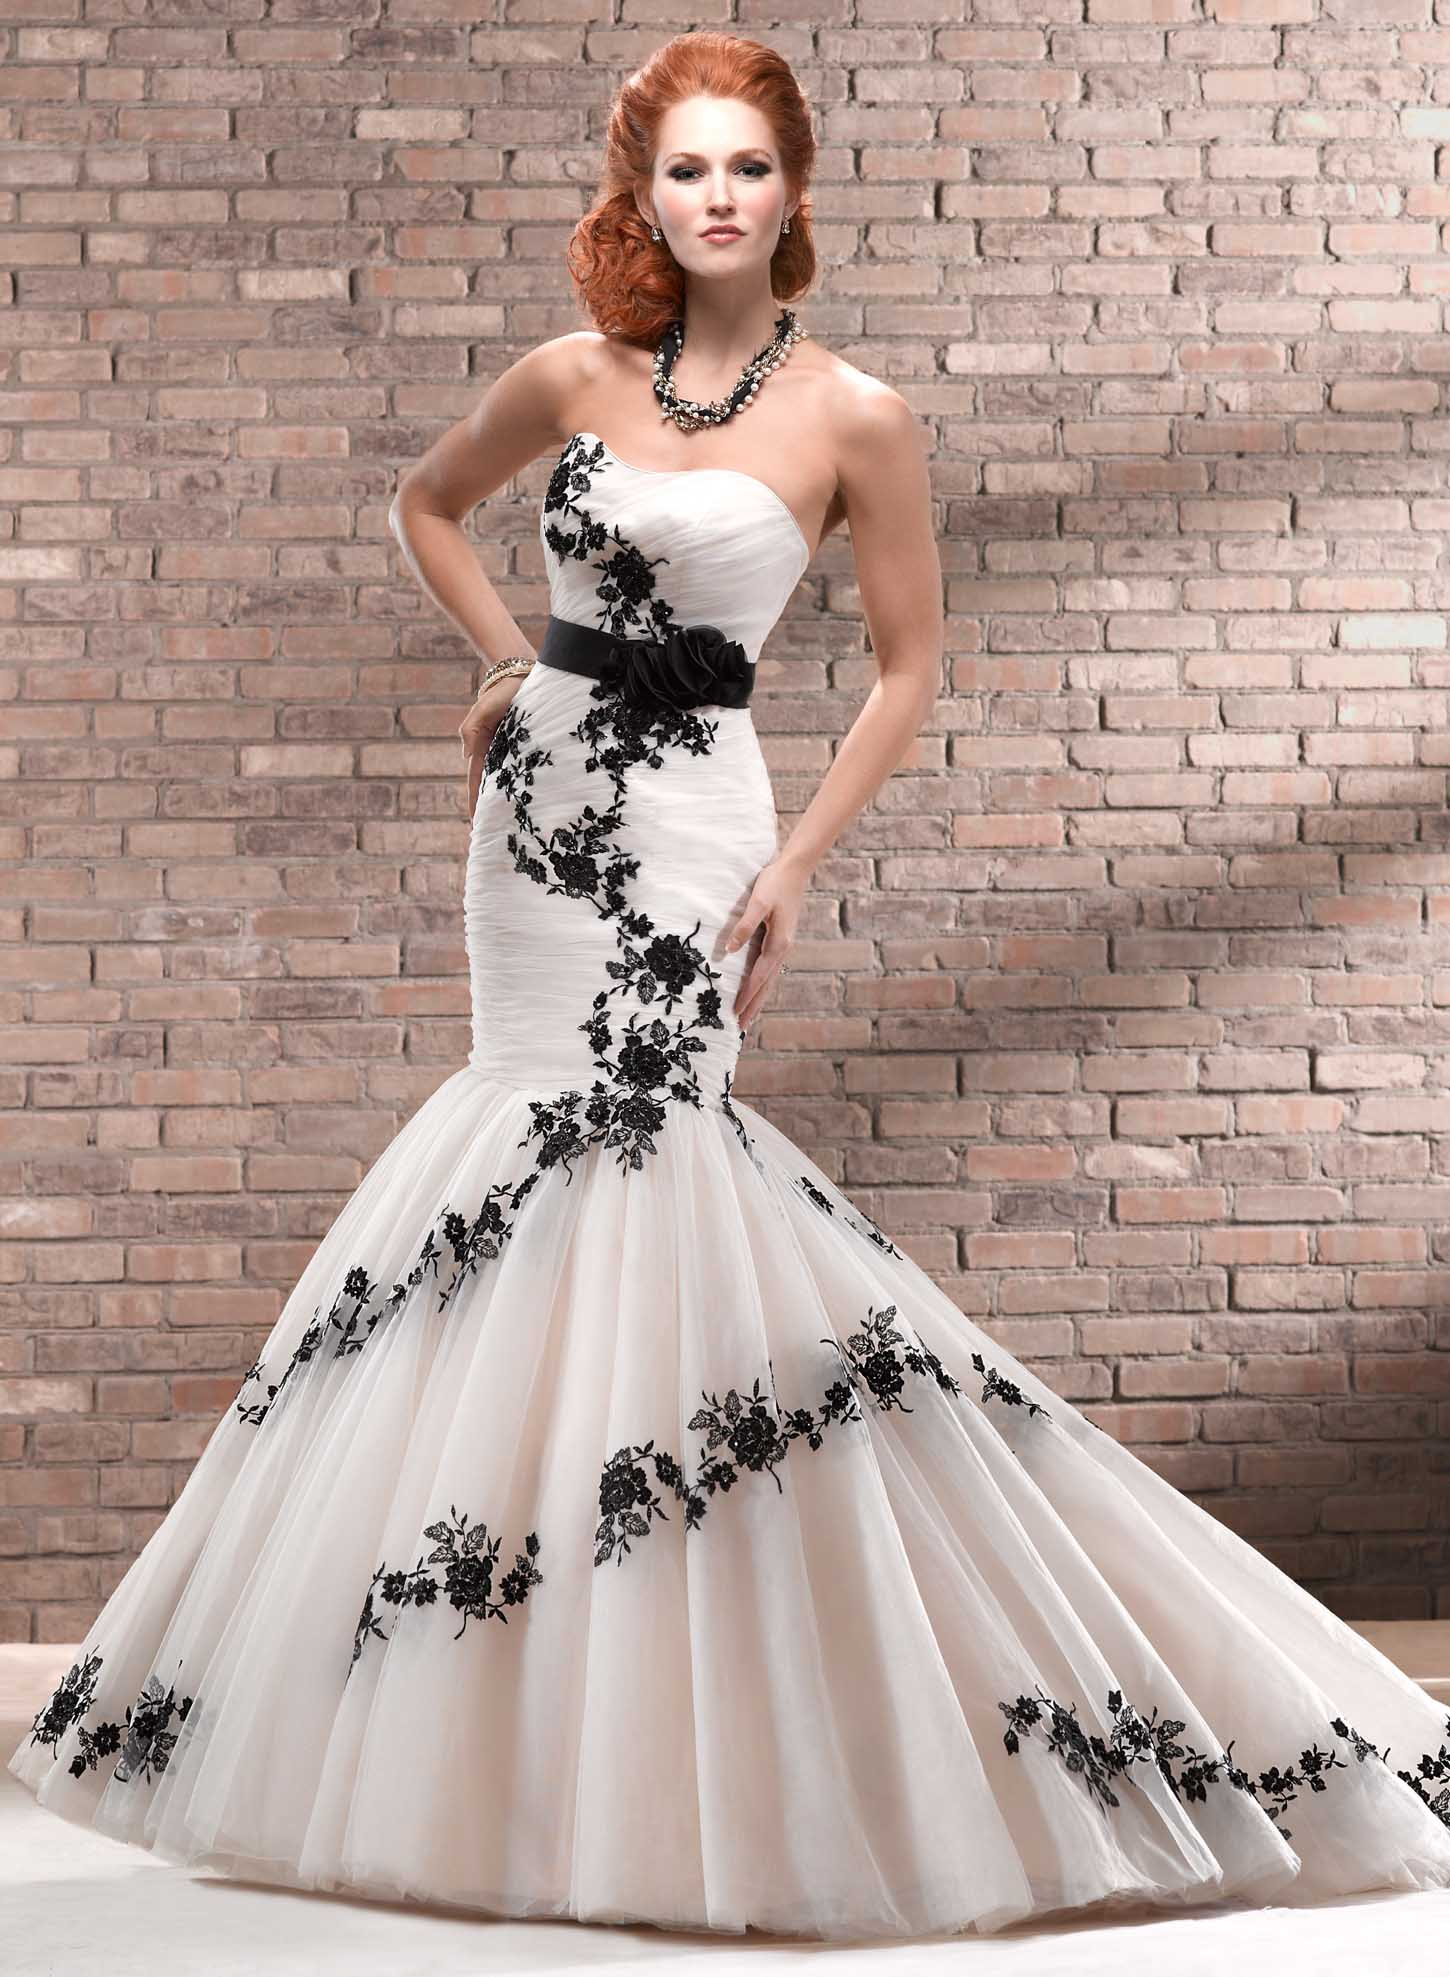 Black wedding dresses dressed up girl for Wedding dresses white and black